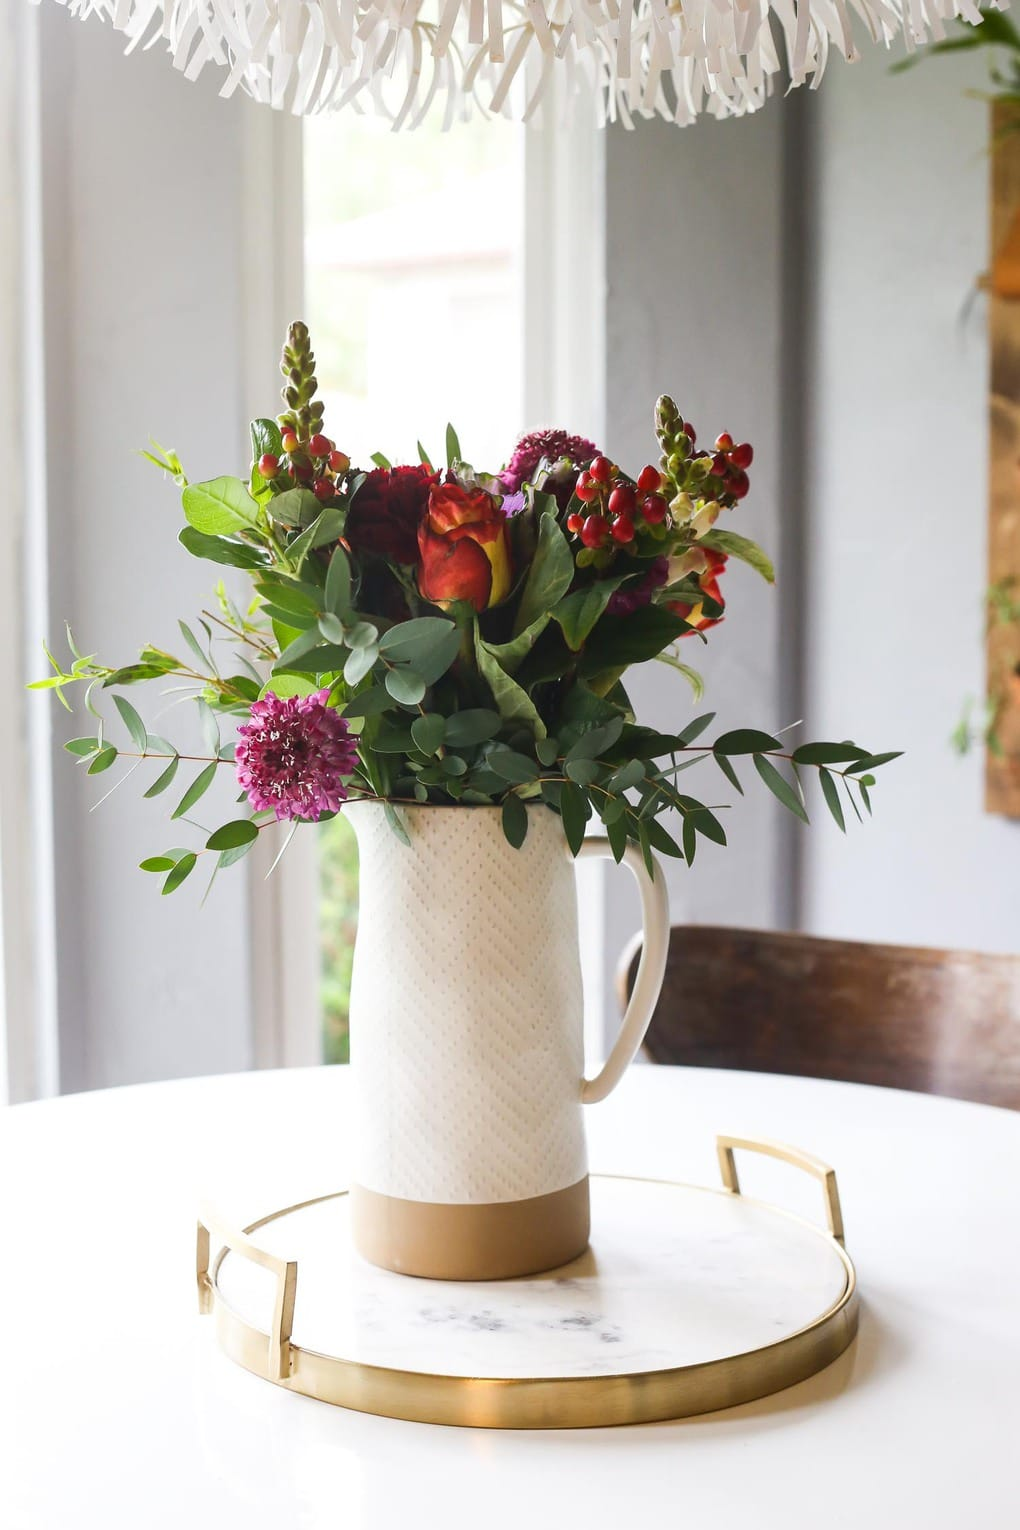 Flower arranging tips - great ideas for how to put together a beautiful fall bouquet